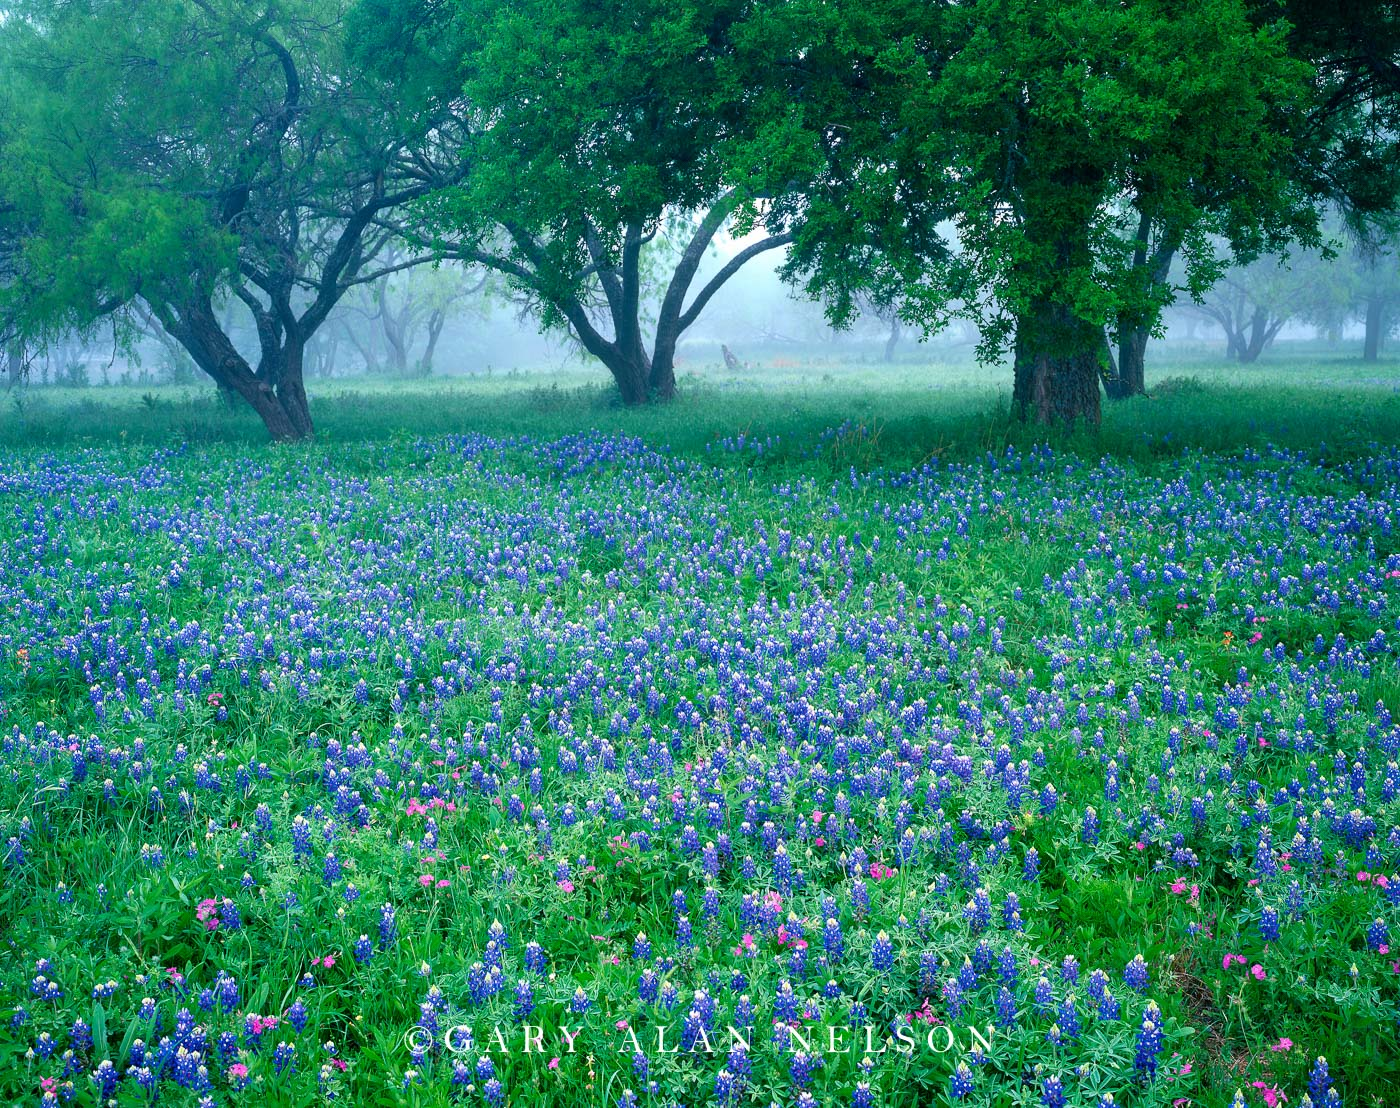 Blanco County, Texas, bluebonnets, phlox, oak trees, photo